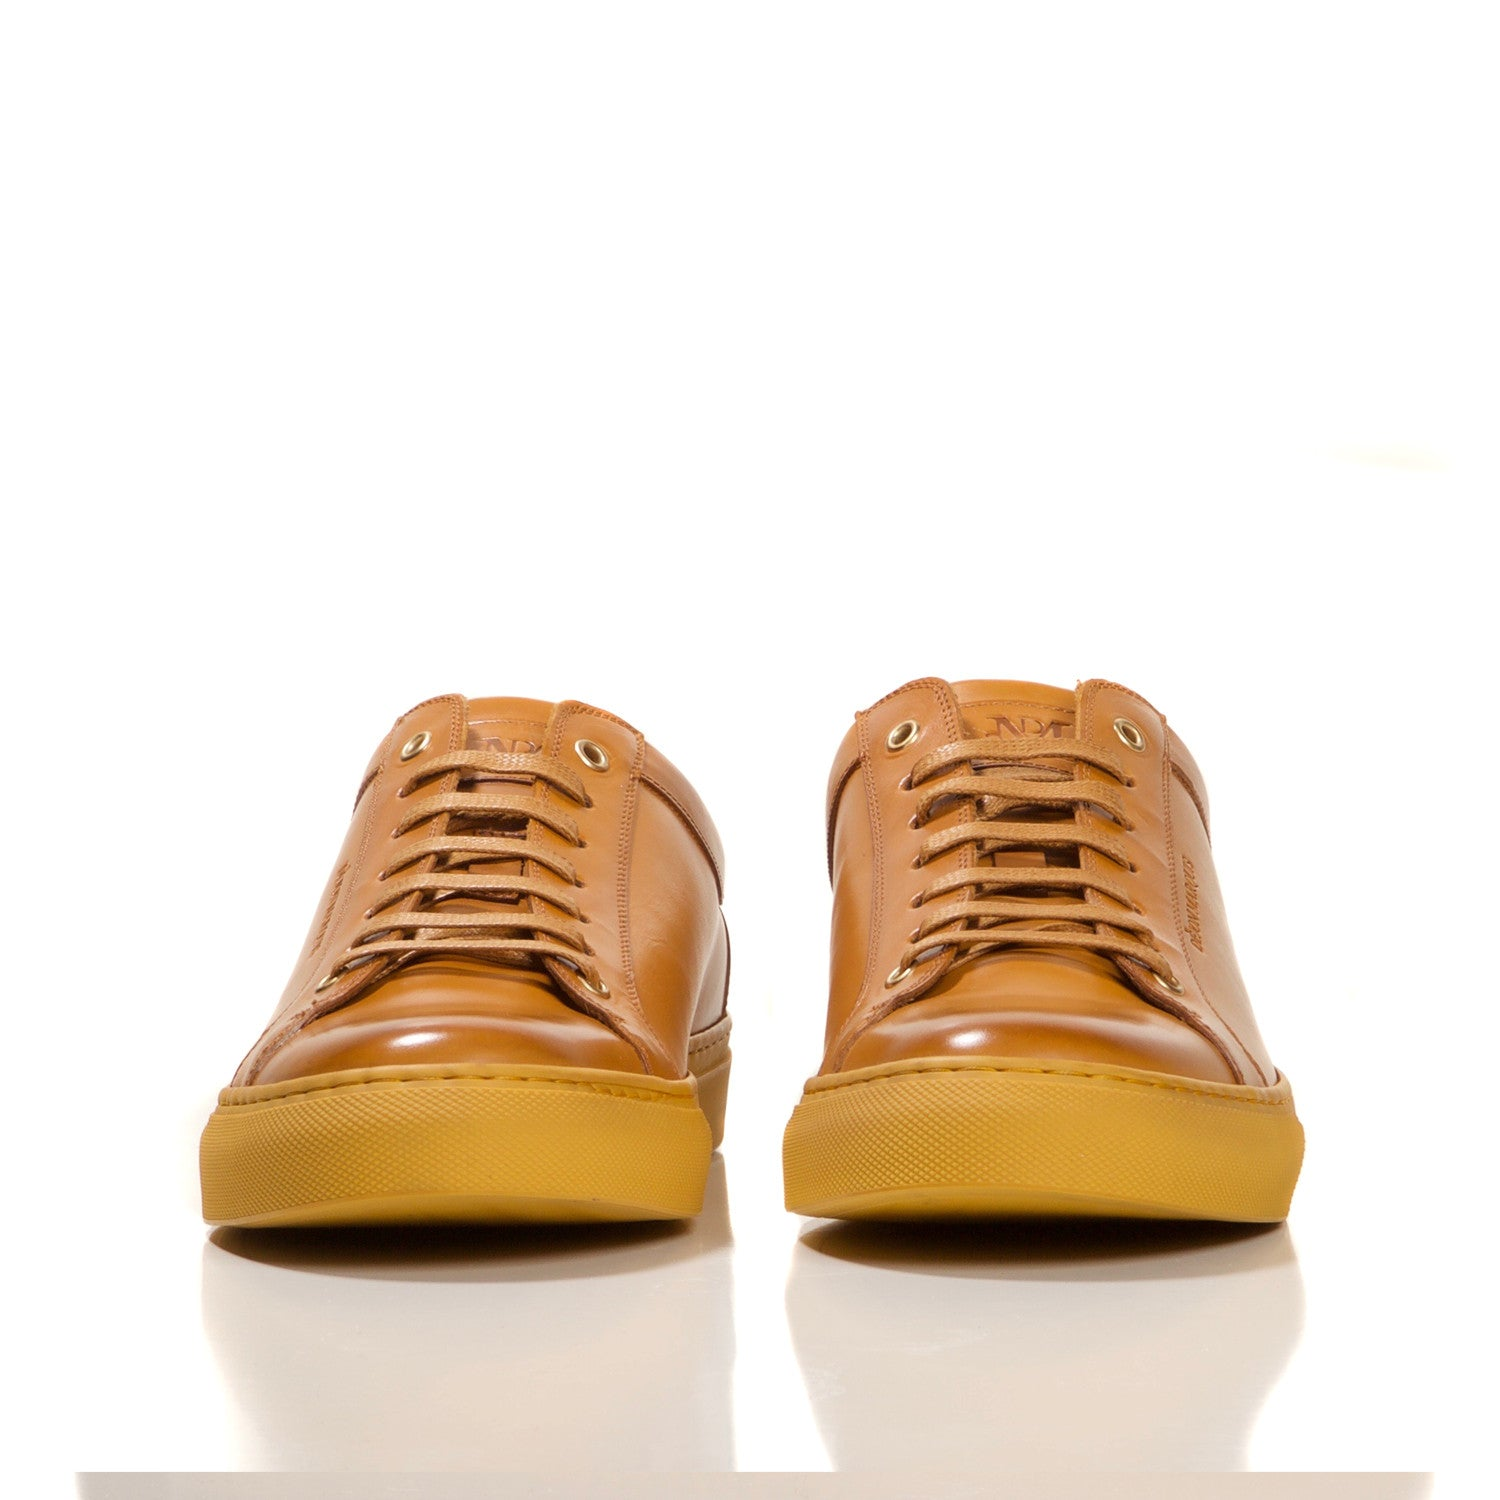 HONEY LOW TOP TAILORED SNEAKER